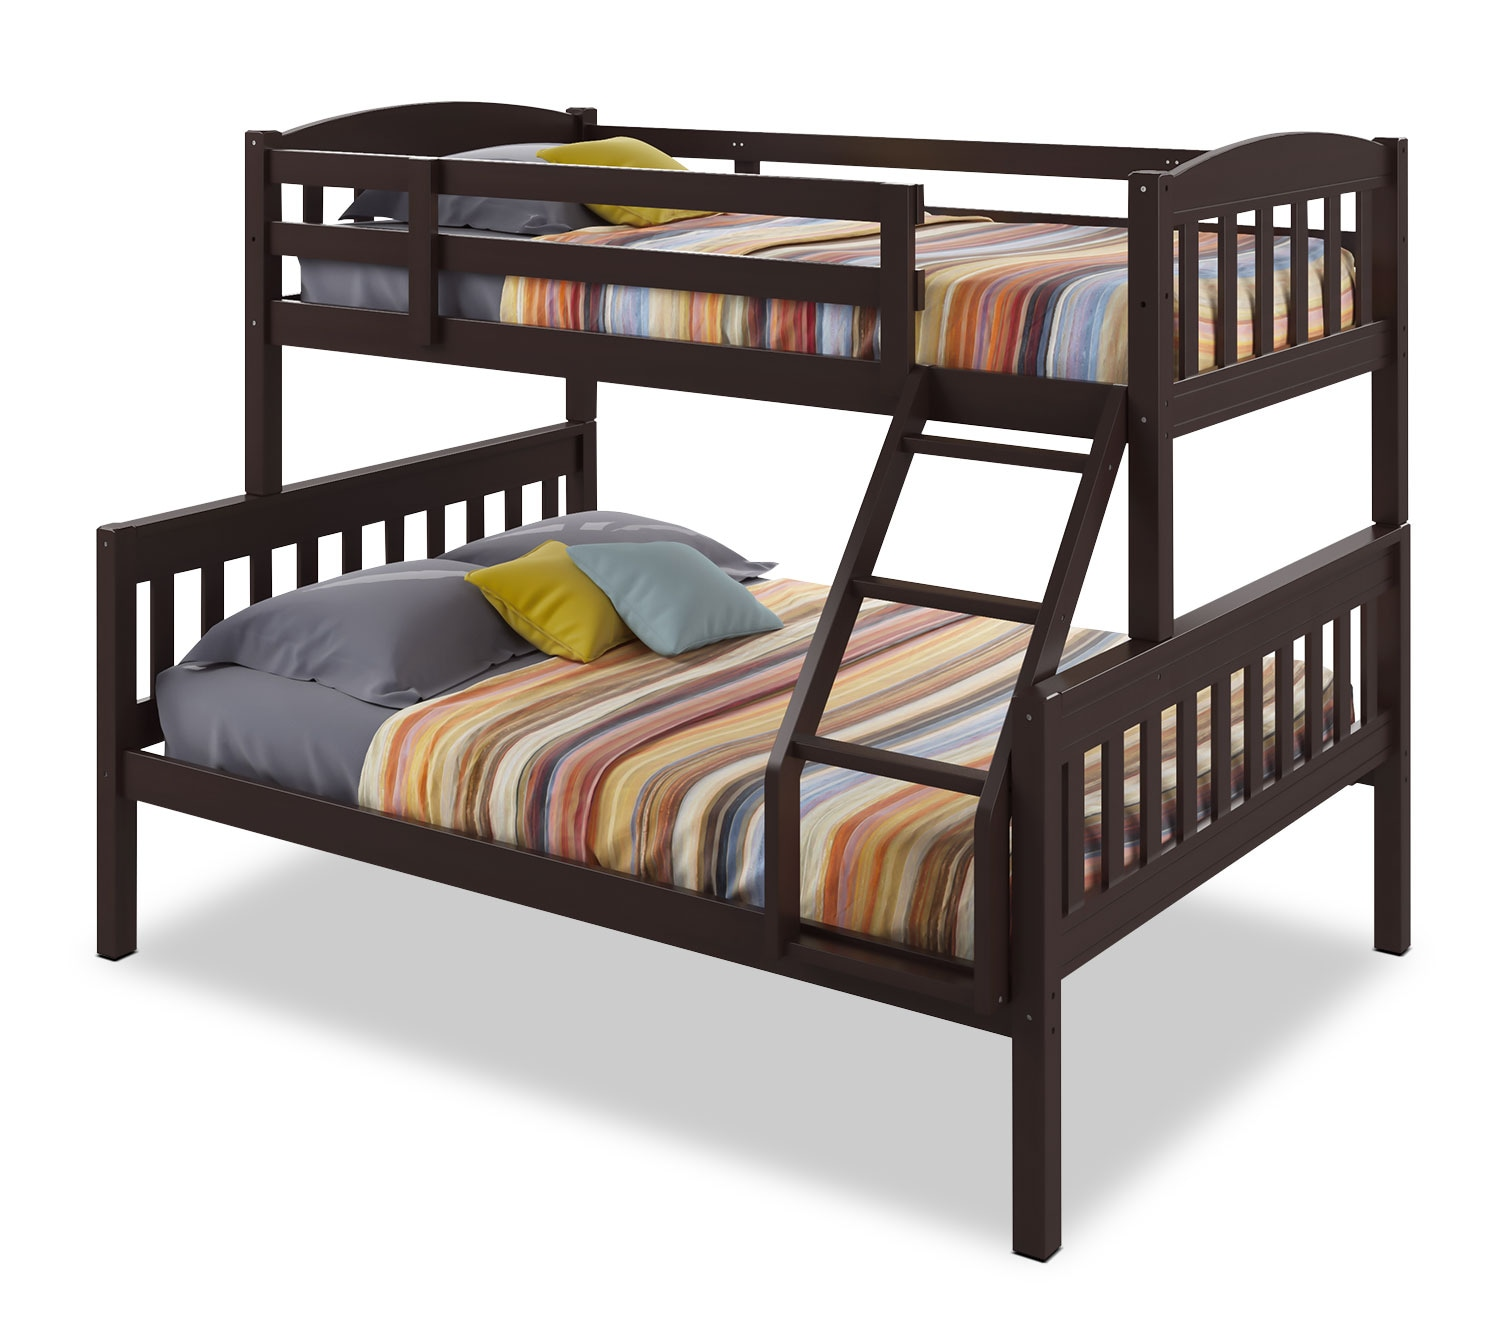 CorLiving Twin/Full Bunk Bed with Slat Headboards – Dark Cappuccino